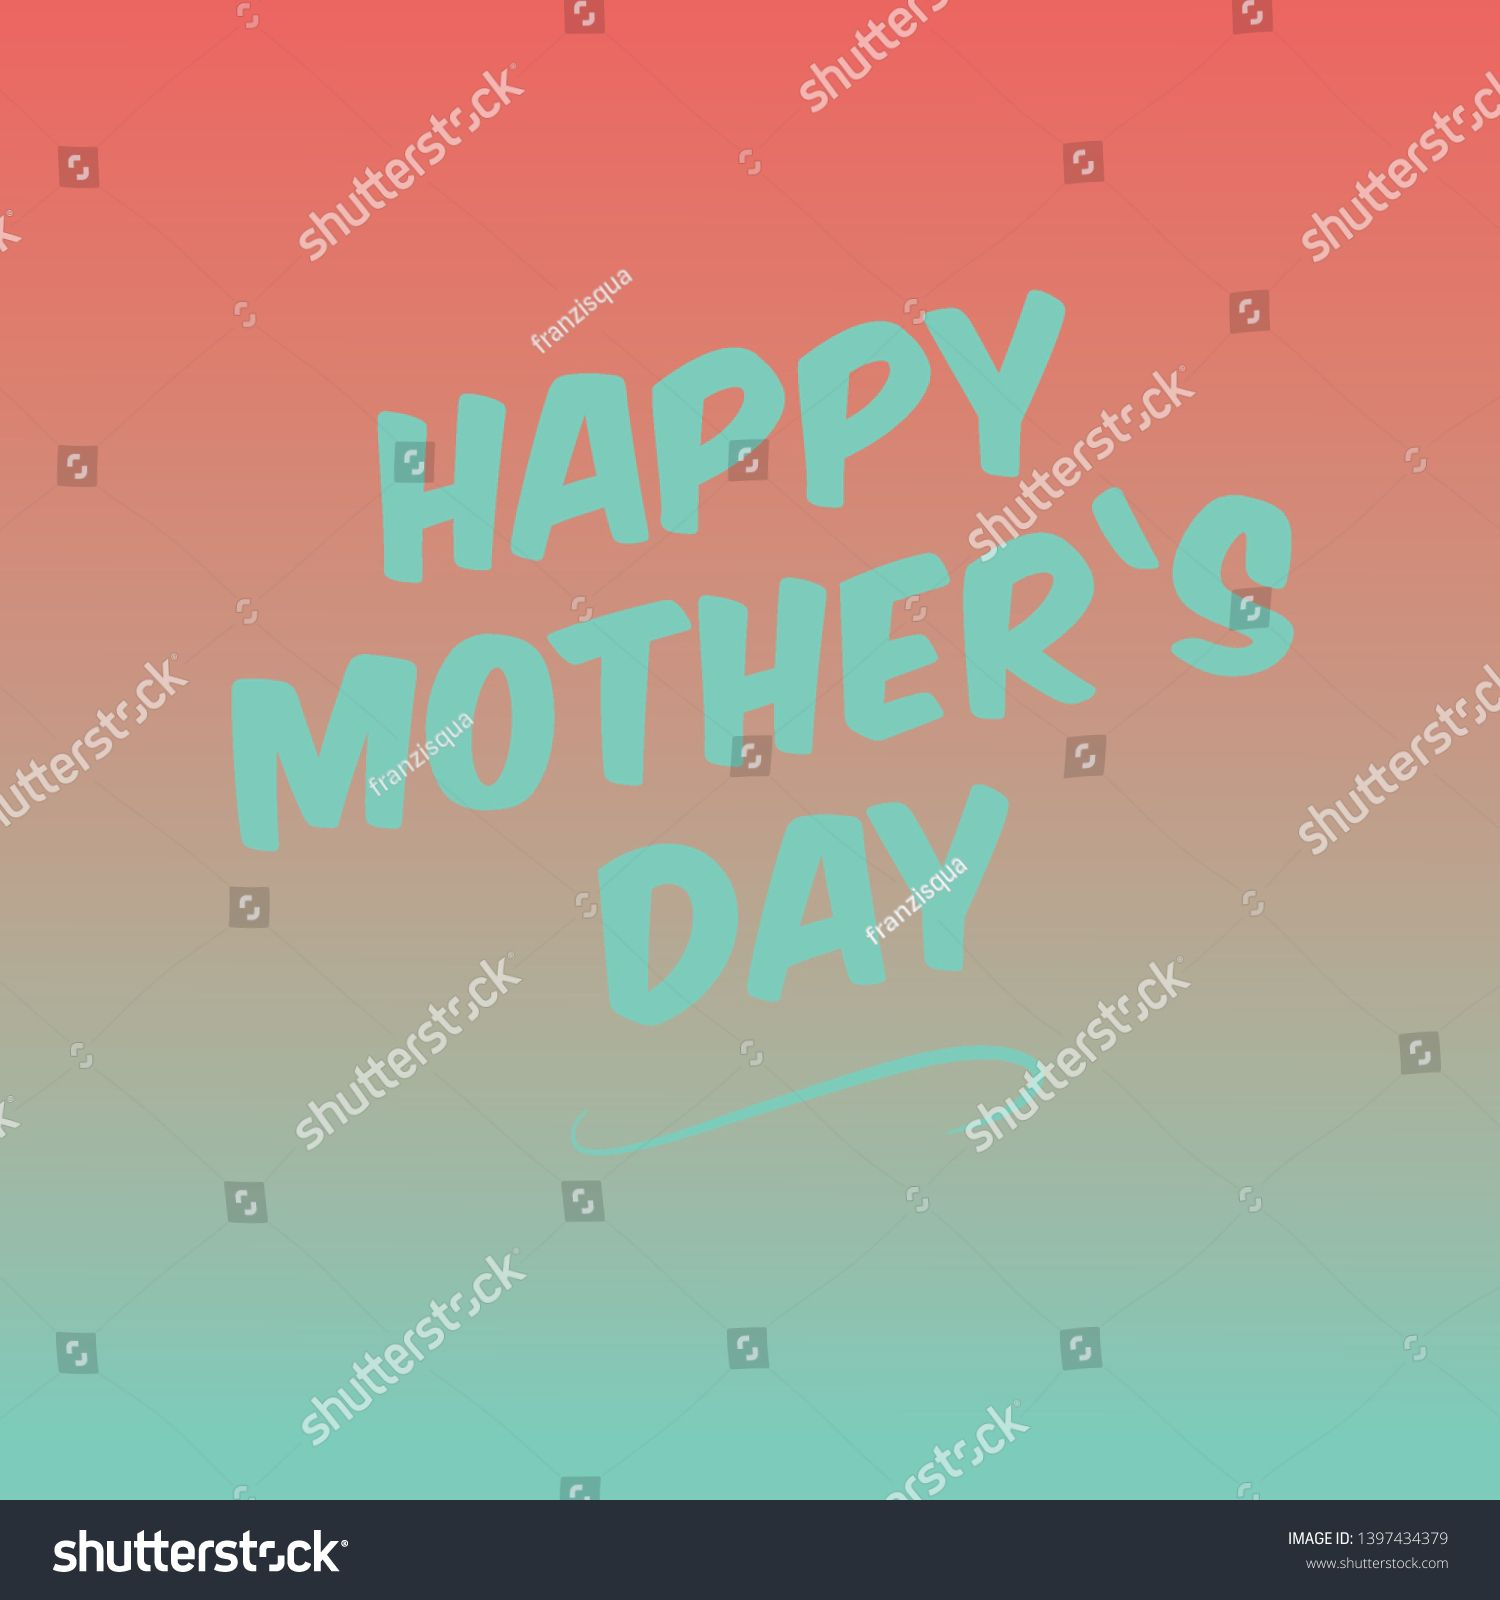 Happy Mother S Day Color Gradient Ad Sponsored Mother Happy Day Gradient Mother S Day Colors Happy Mothers Day Gradient Color